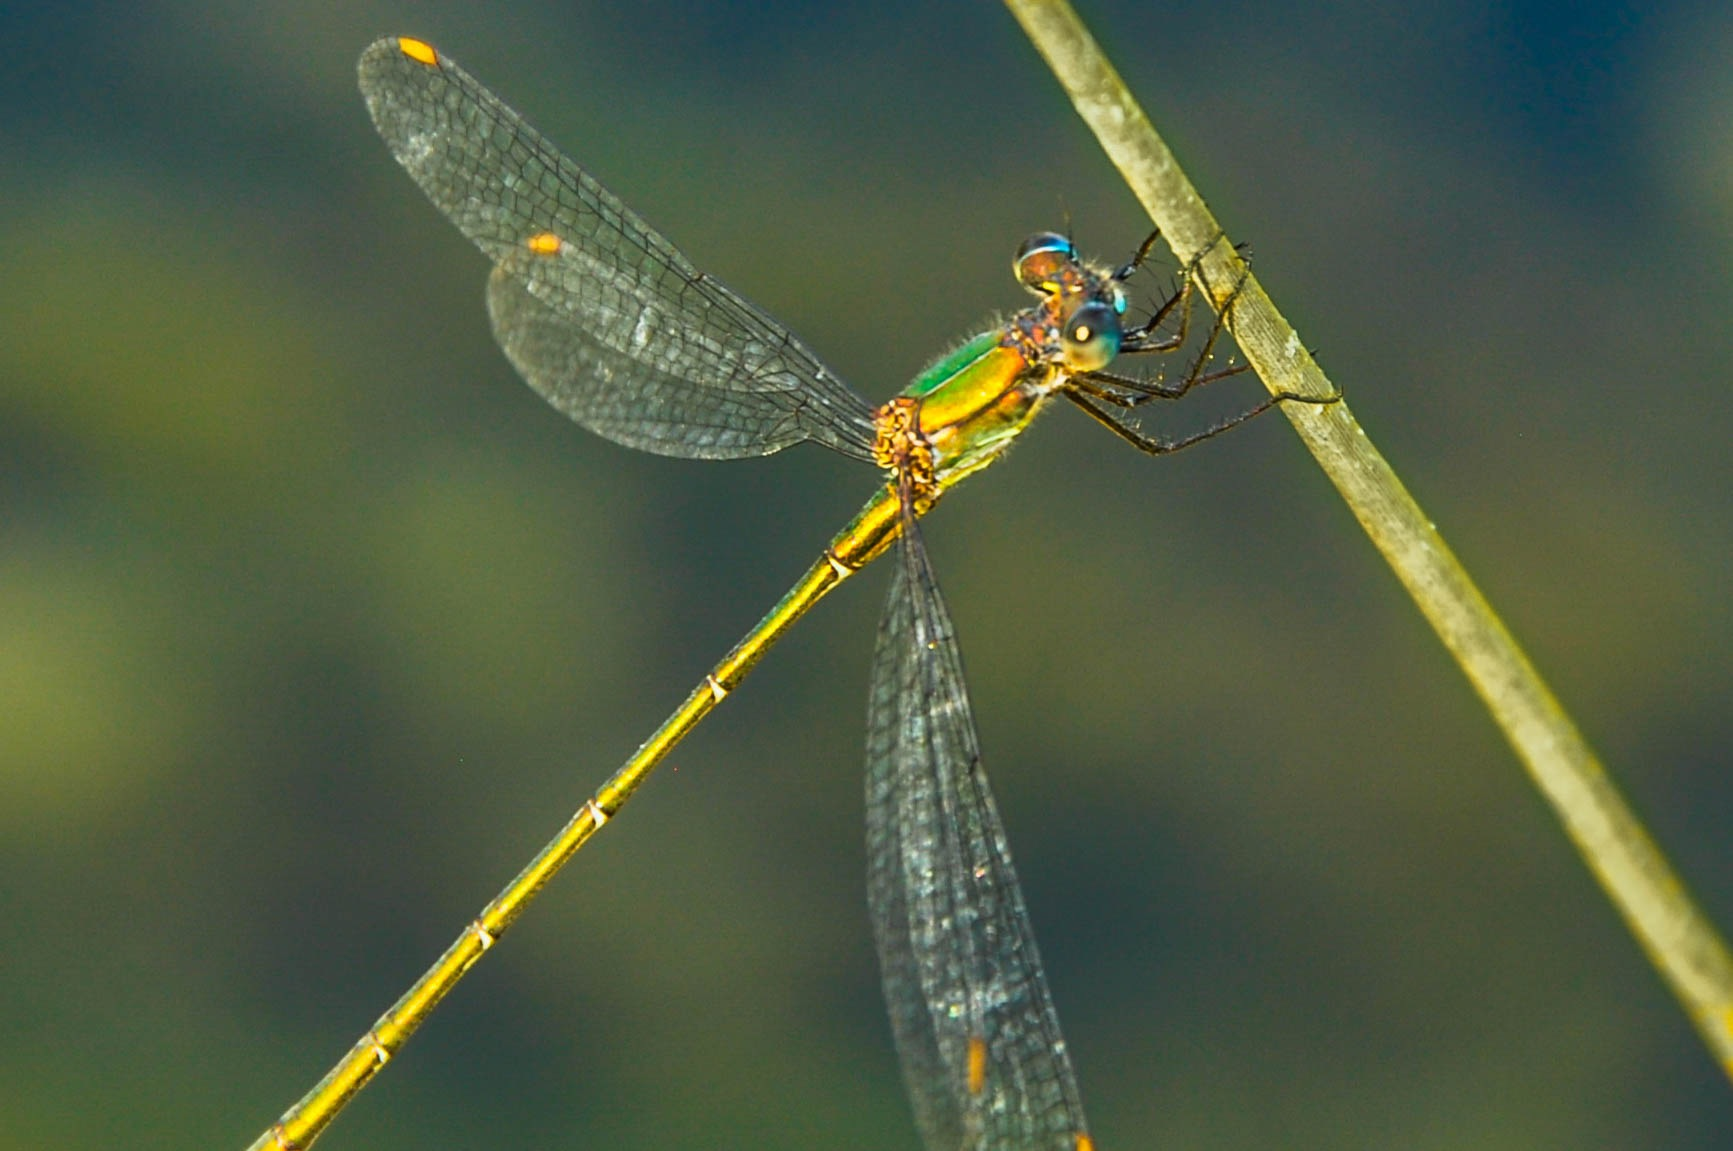 Dragonfly 2 by OneRandomFotographer